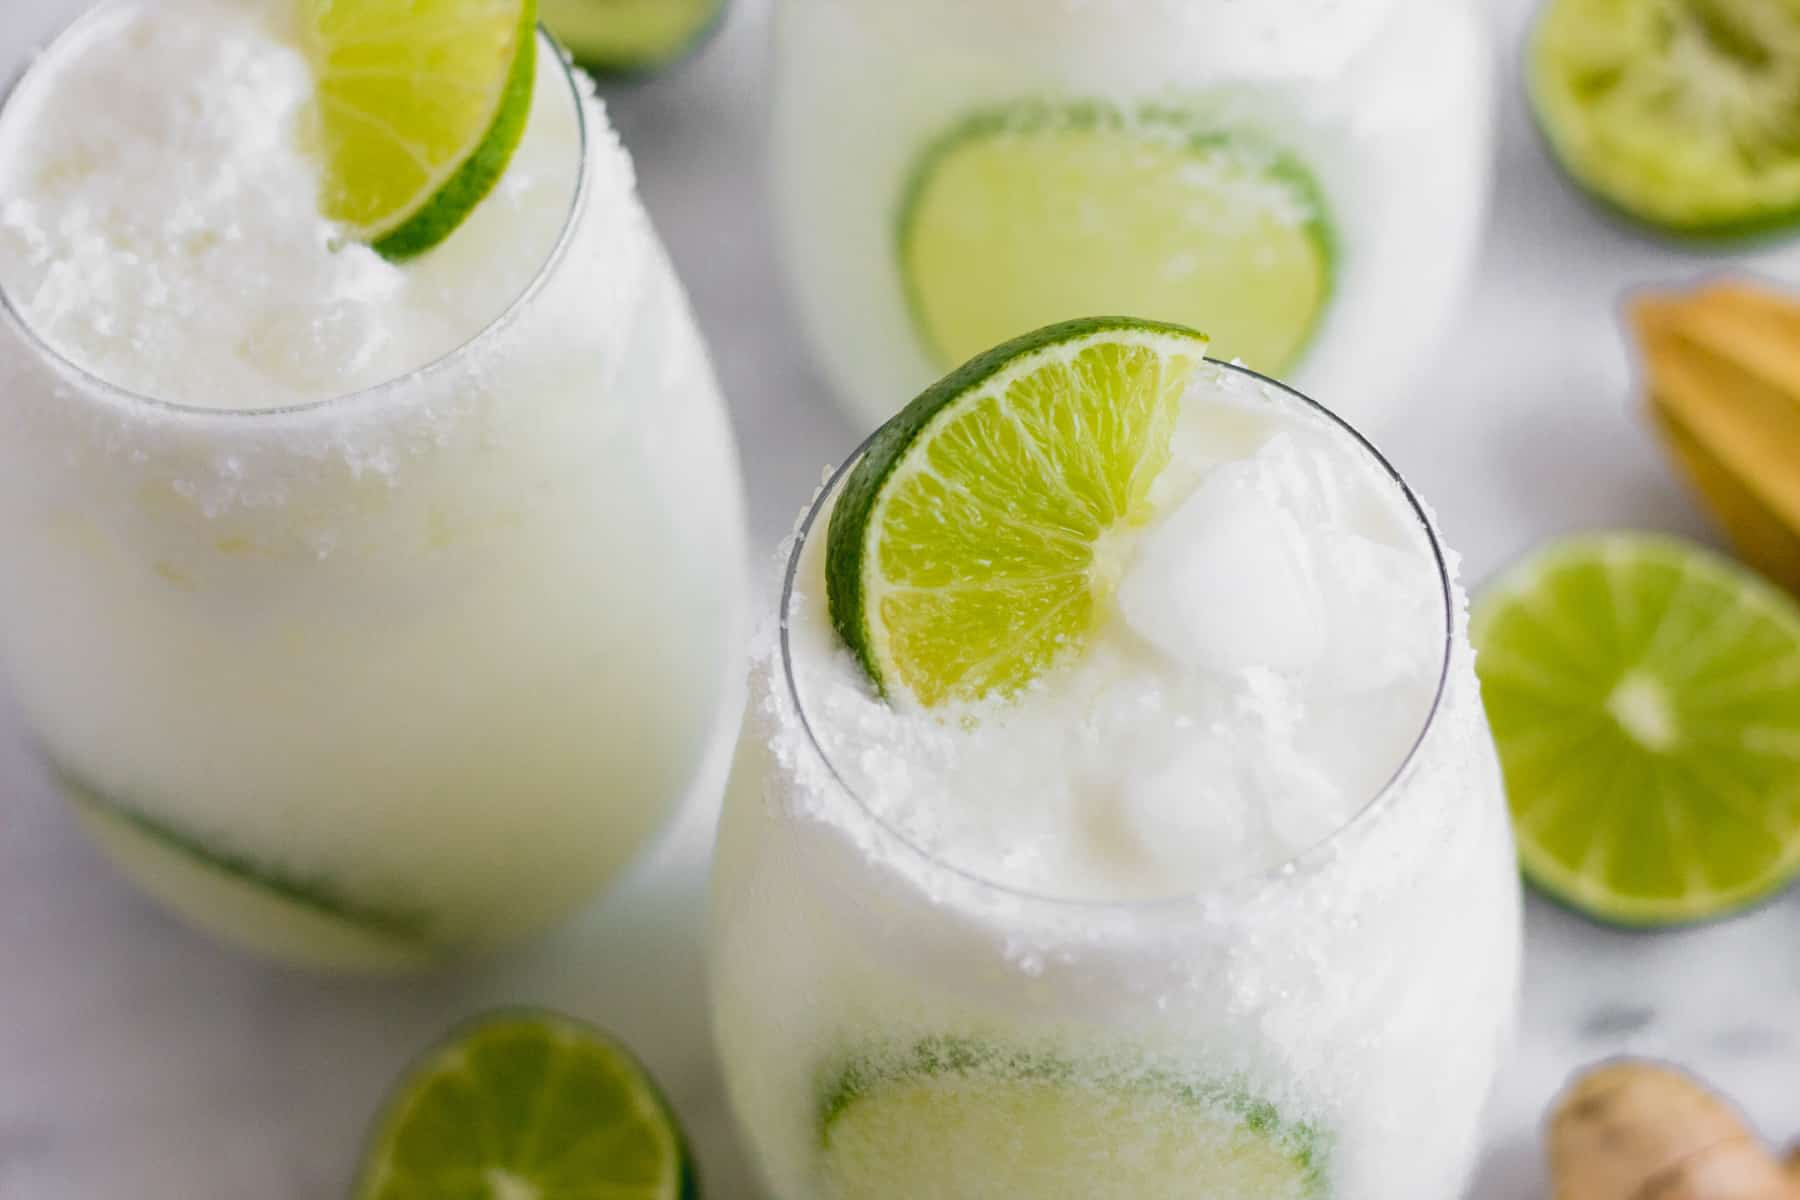 Three glasses filled with coconut lime mocktail on a white countertop surrounded by limes